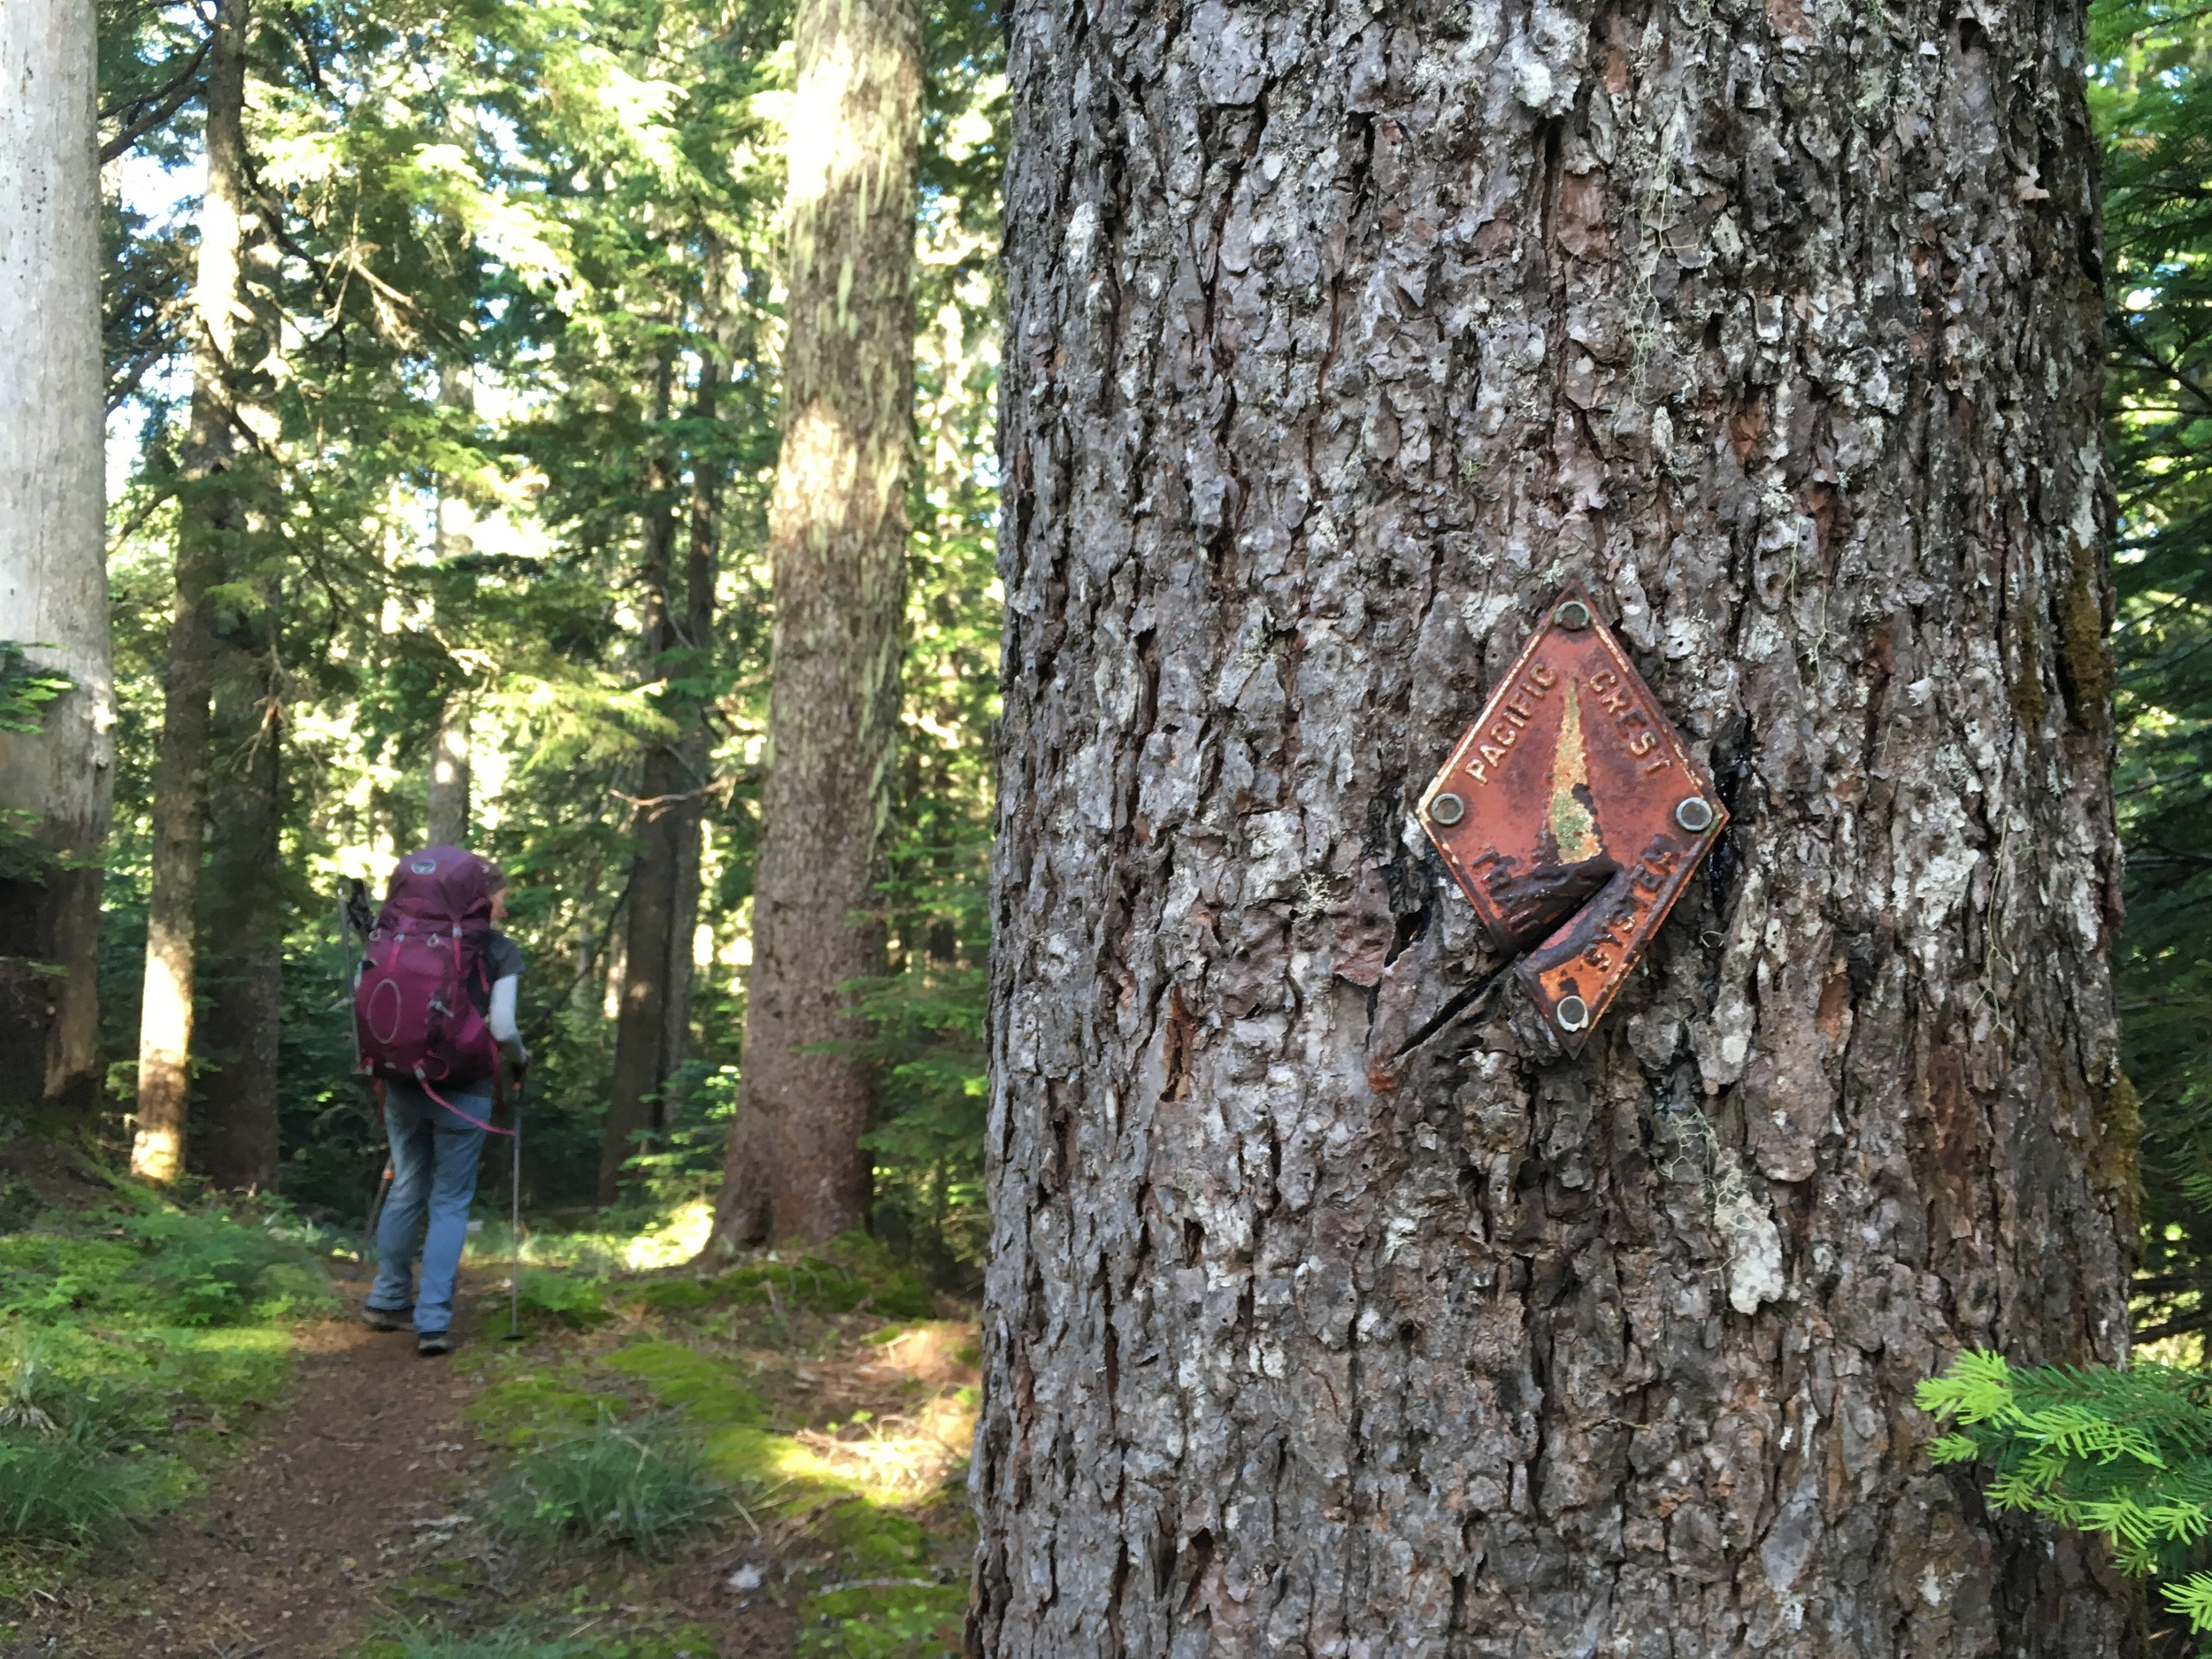 Weathered PCT sign in the forest.